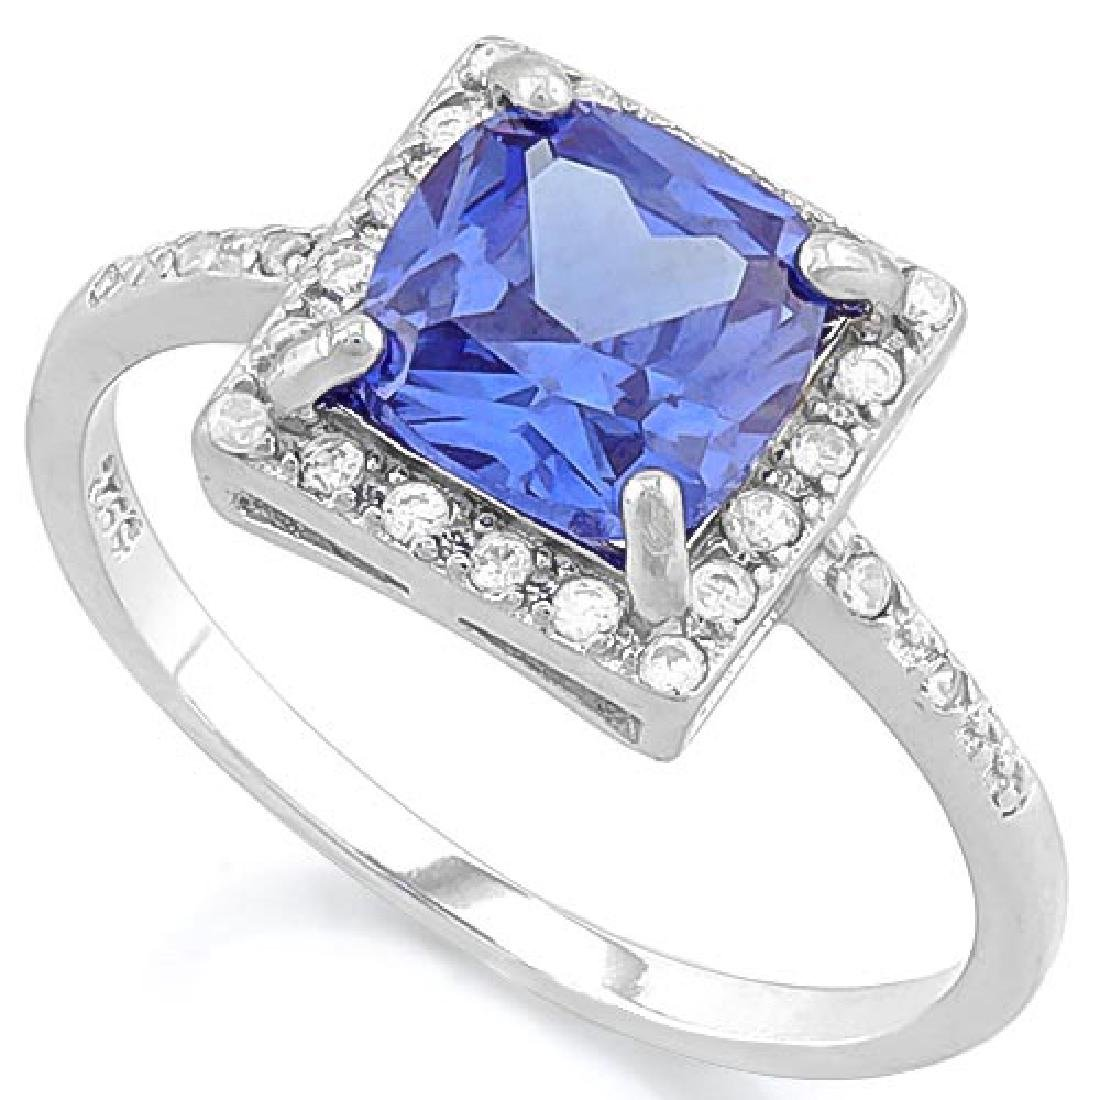 2 3/5 CARAT LAB TANZANITE & (24 PCS) FLAWLESS CREATED D